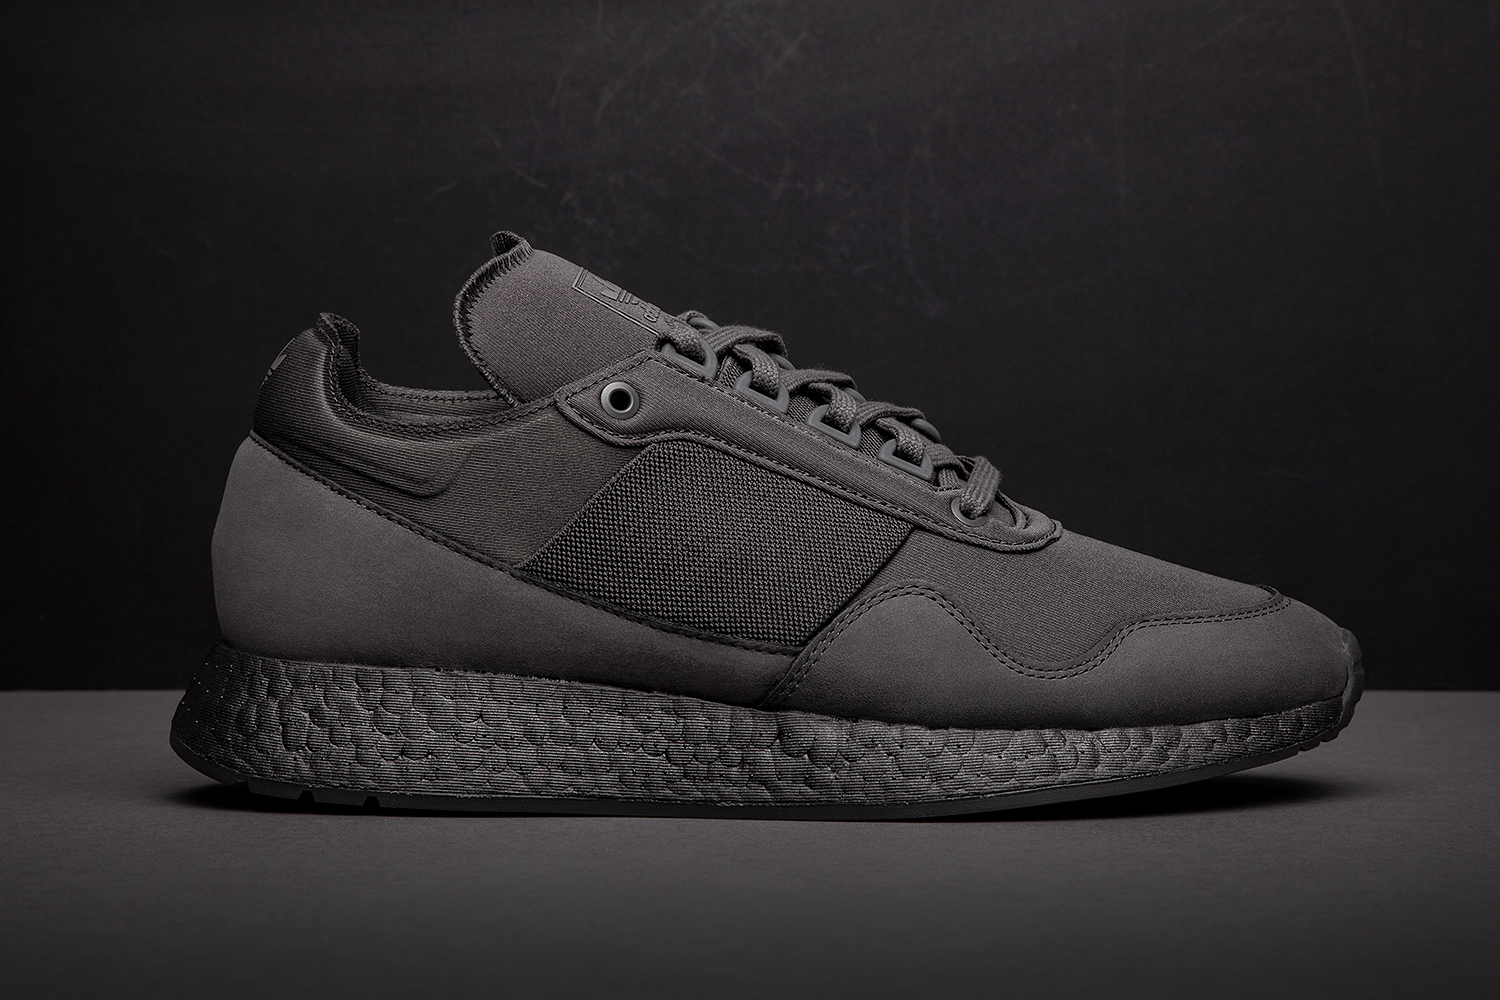 adidas x Daniel Arsham_photography by kev foster for philip browne 1.jpg